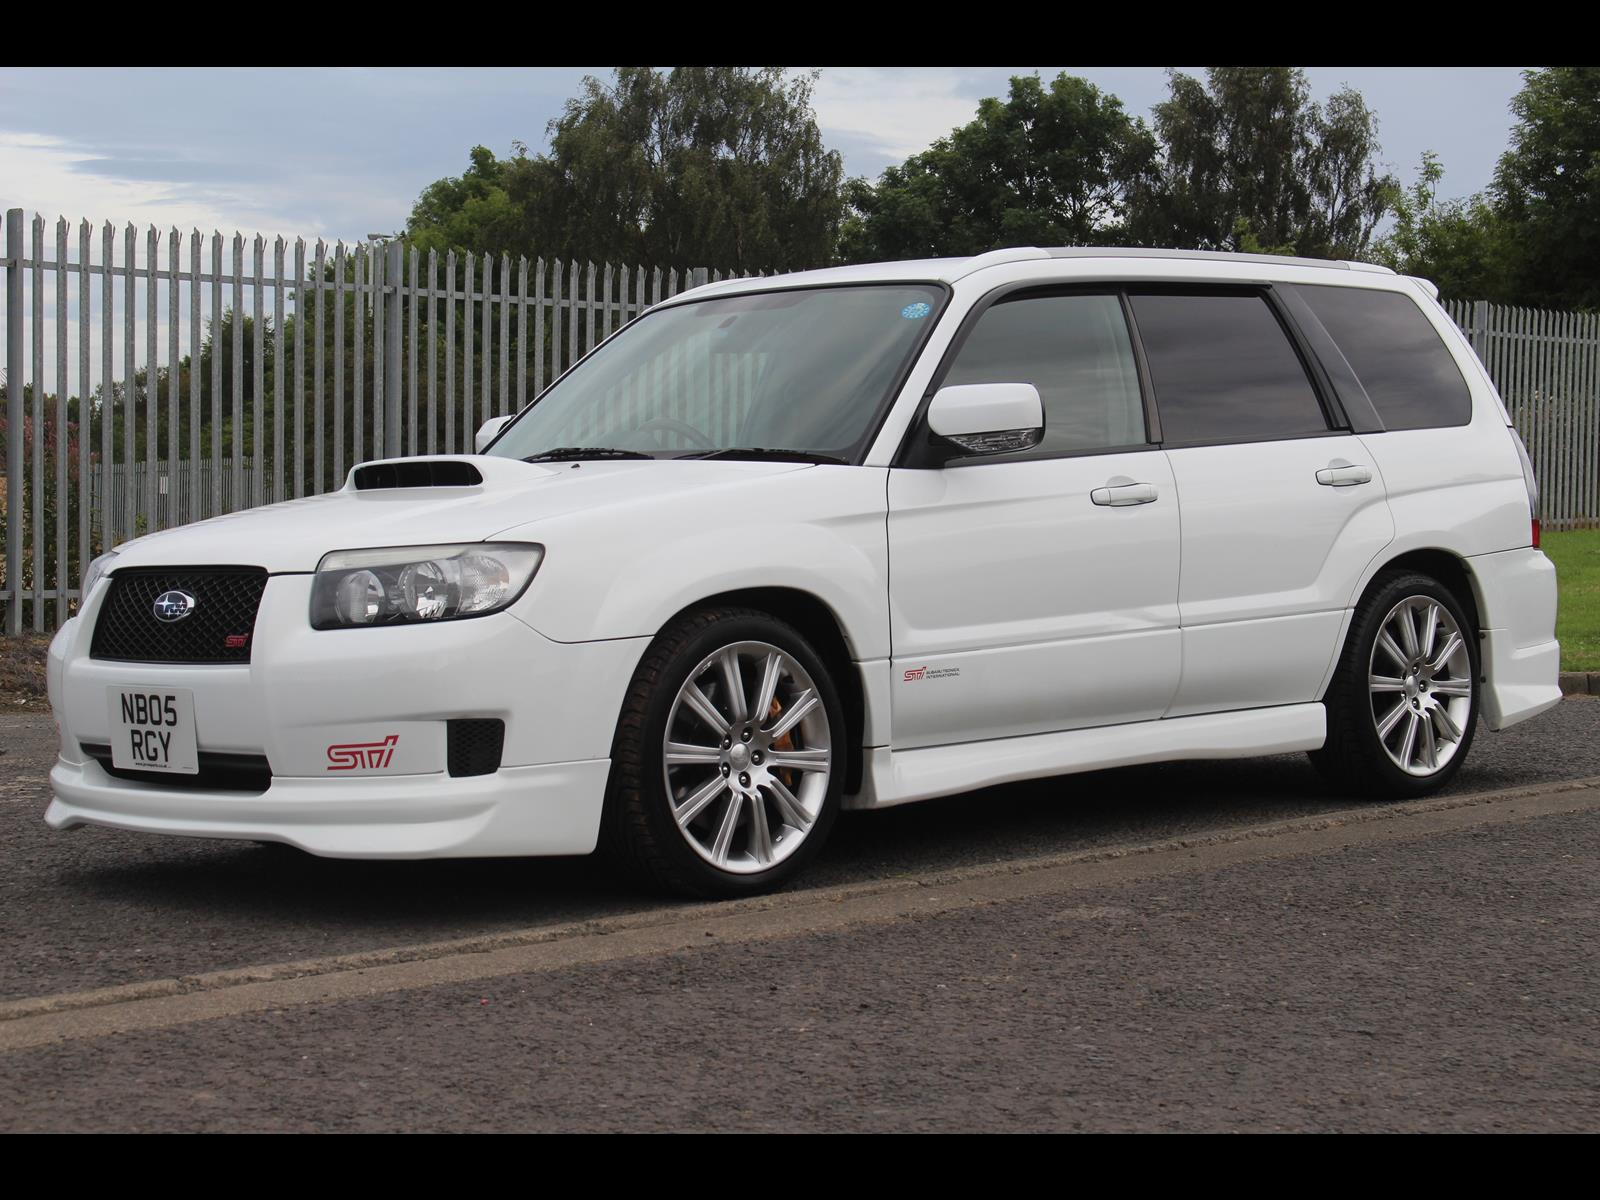 2005 Subaru Forester Sti Sg9 6 Speed Manual Jm Imports